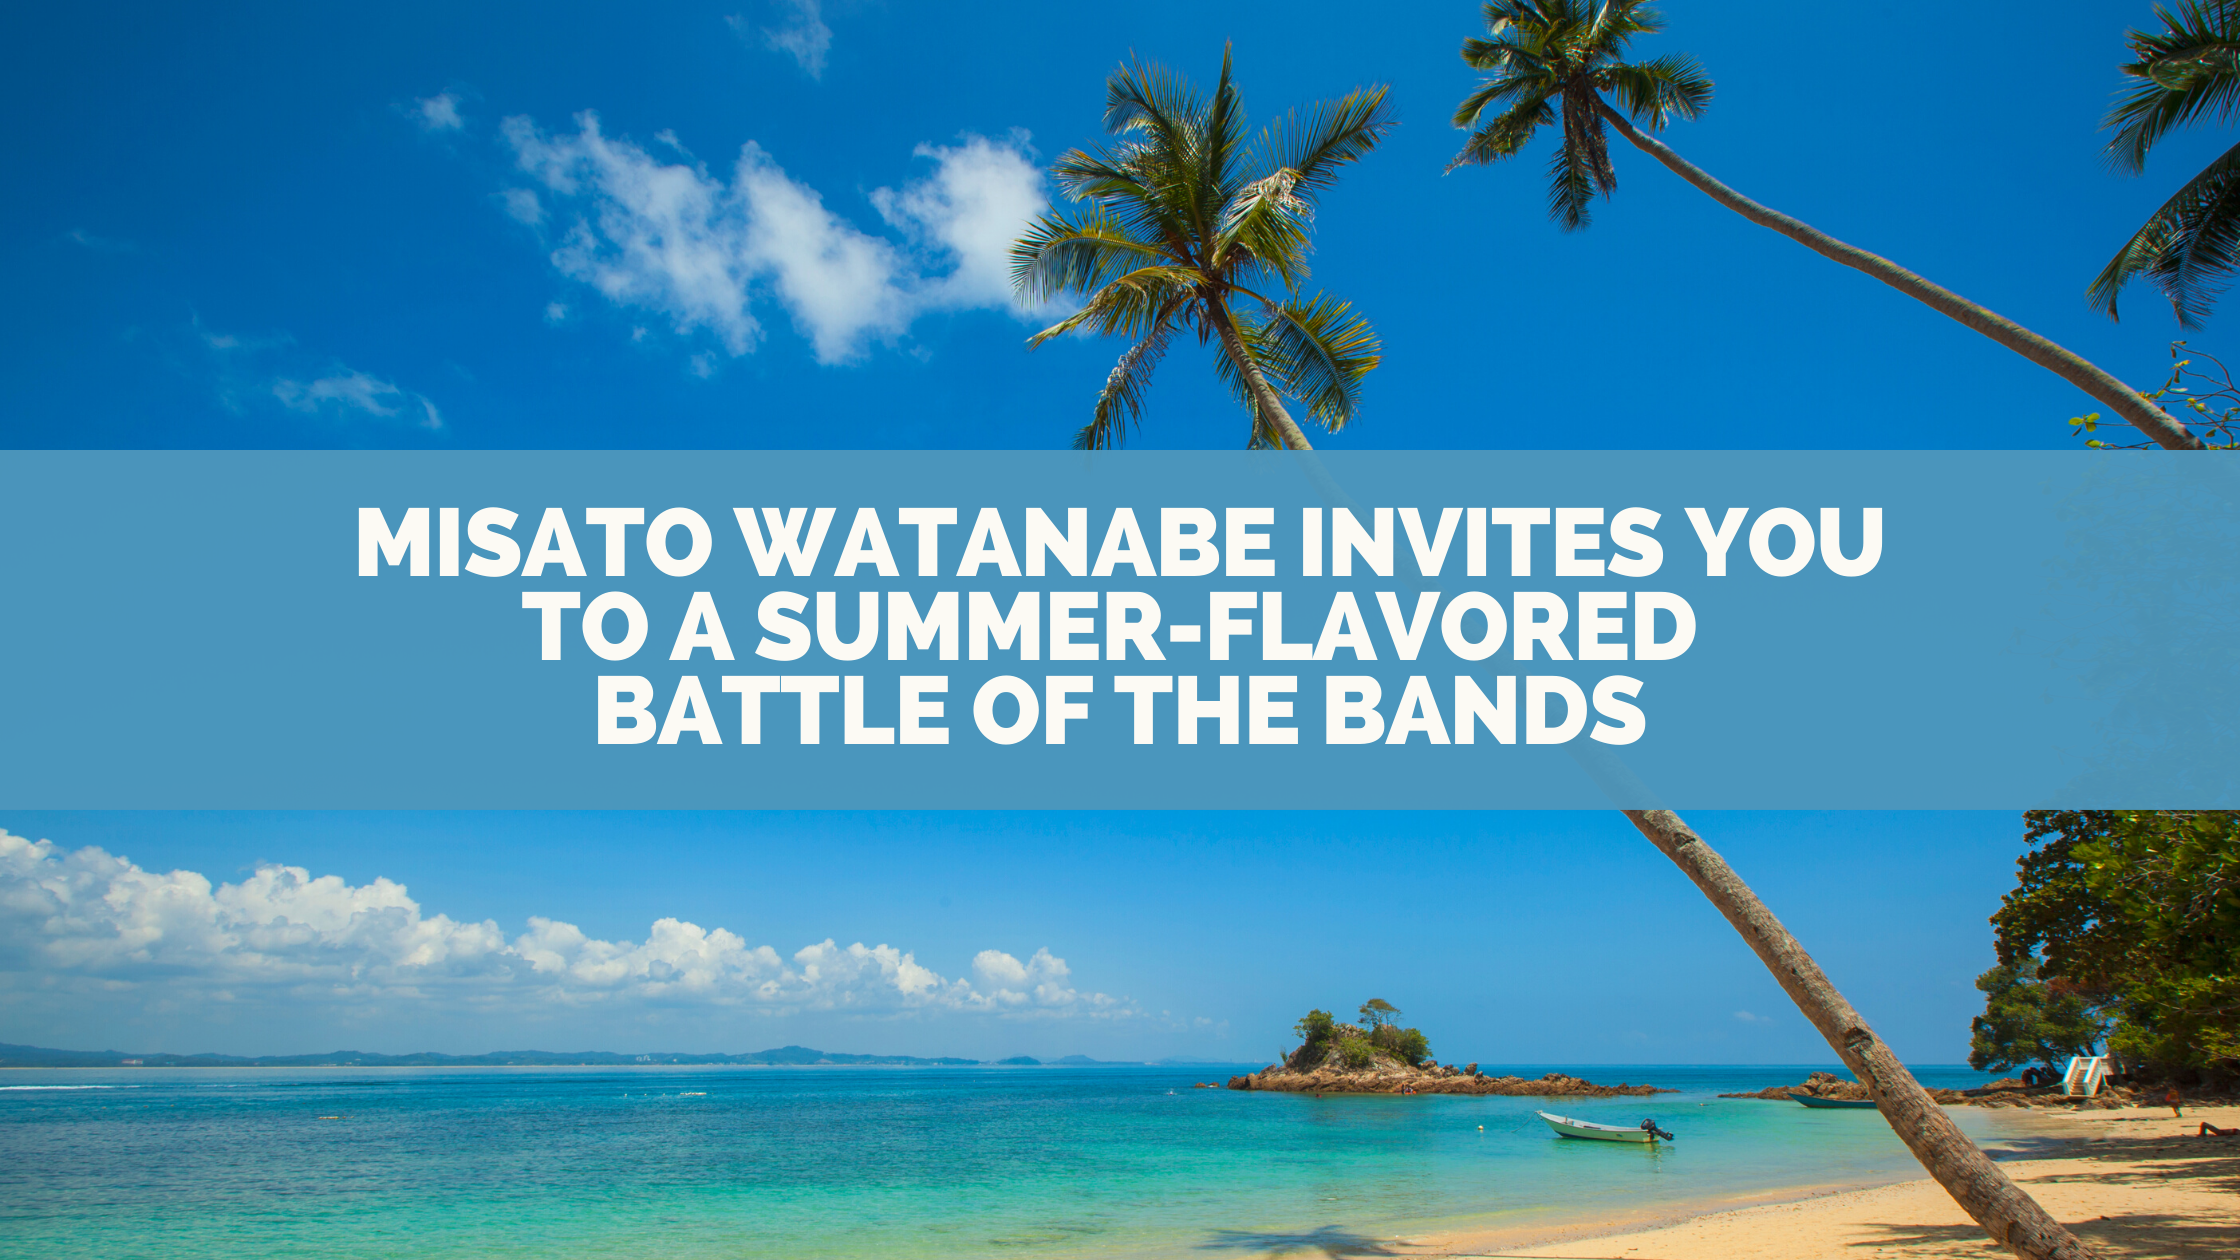 Misato Watanabe Invites You To A Summer-Flavored Battle of the Bands